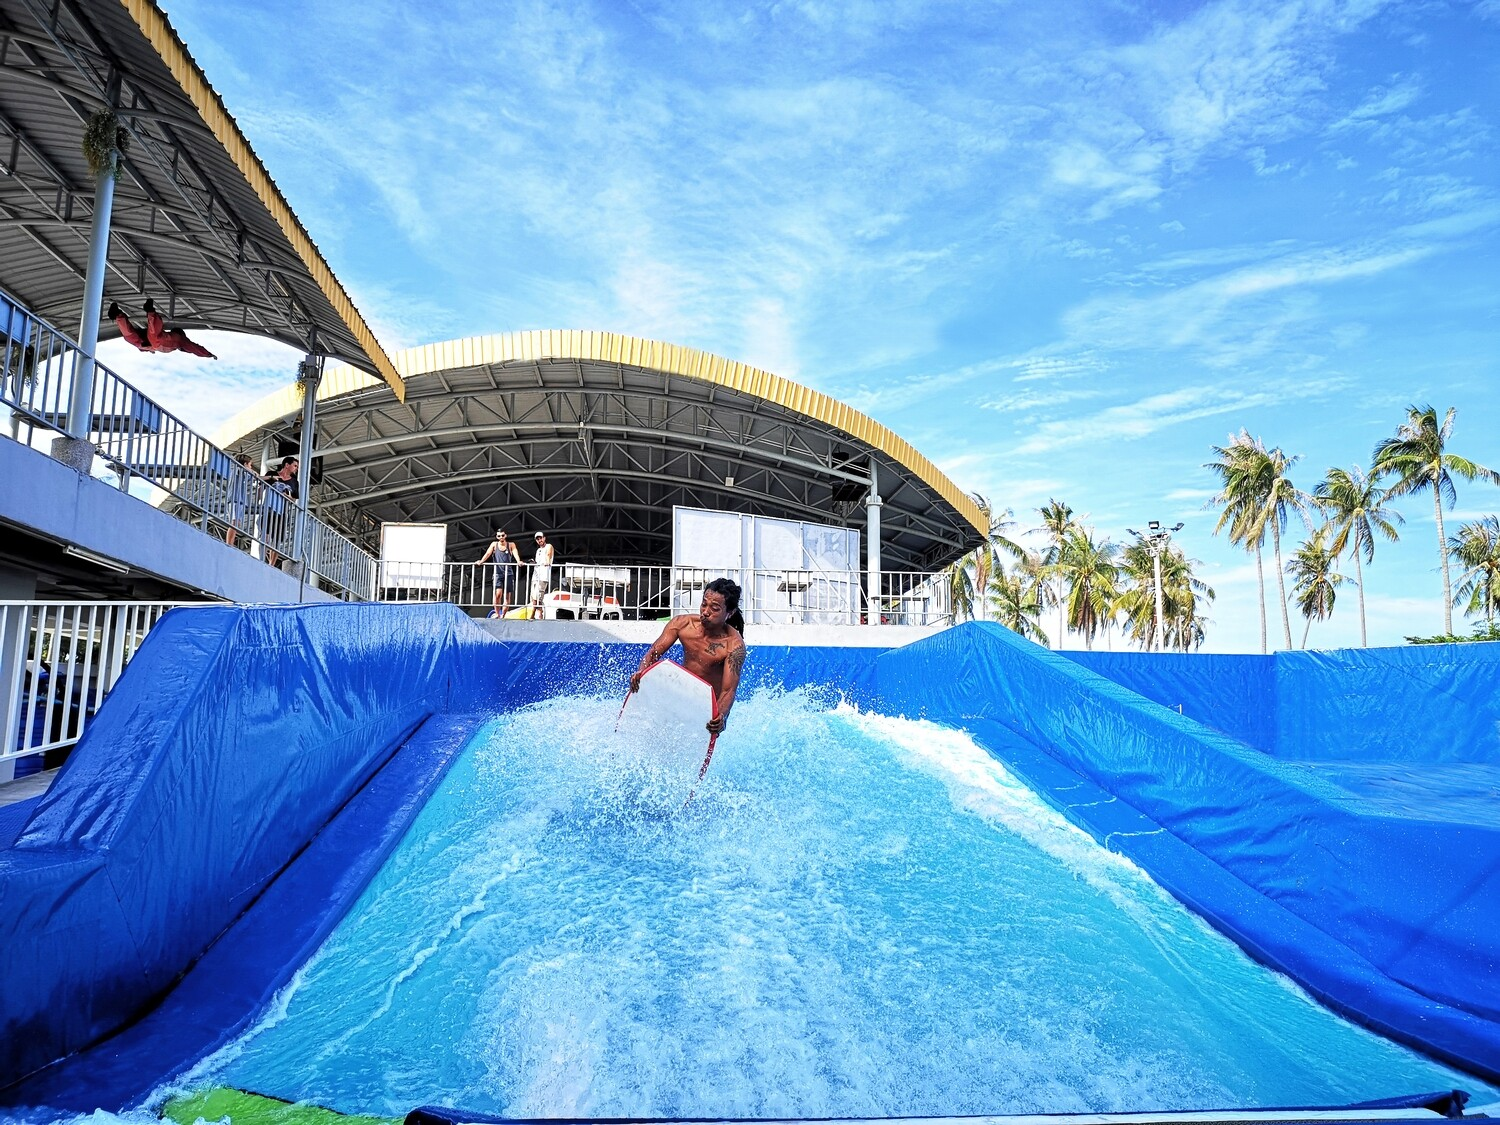 FlowRiding - 12 Waves + FREE T-Shirt (12 Hours for 1 Rider)